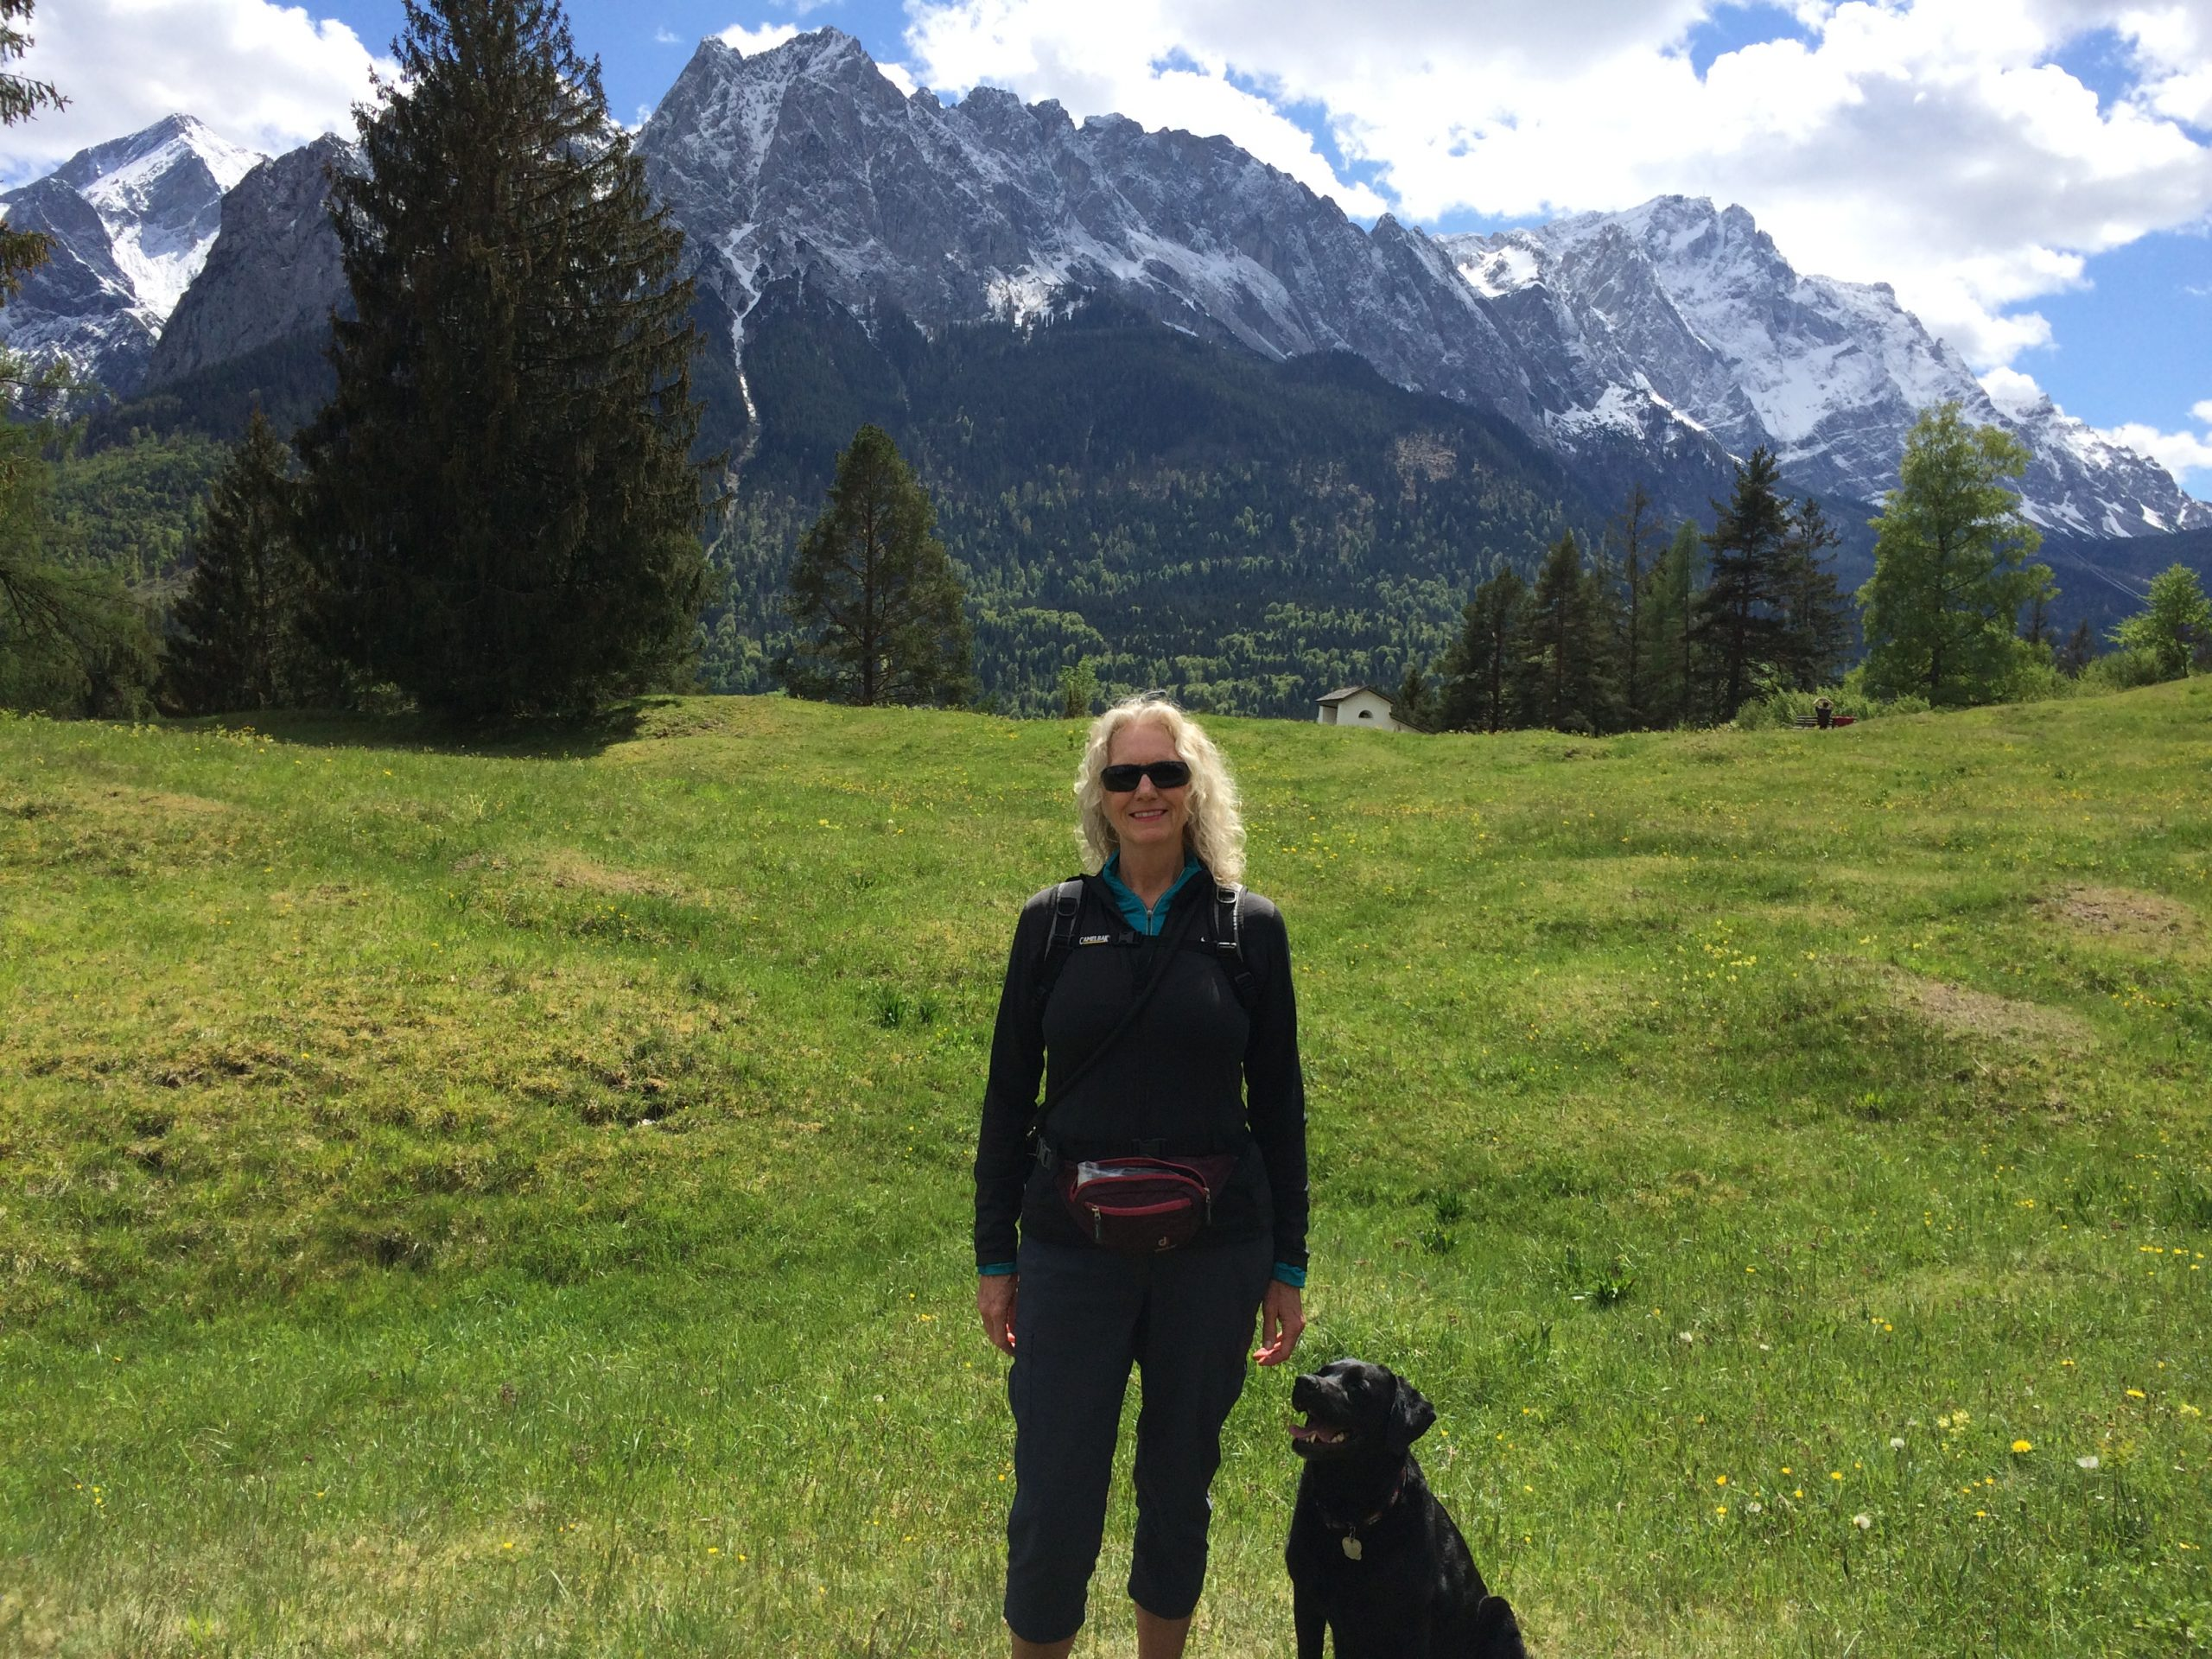 Cher Woywod back home in the Bavarian Alps of Germany. (Courtesy/Woywod family)